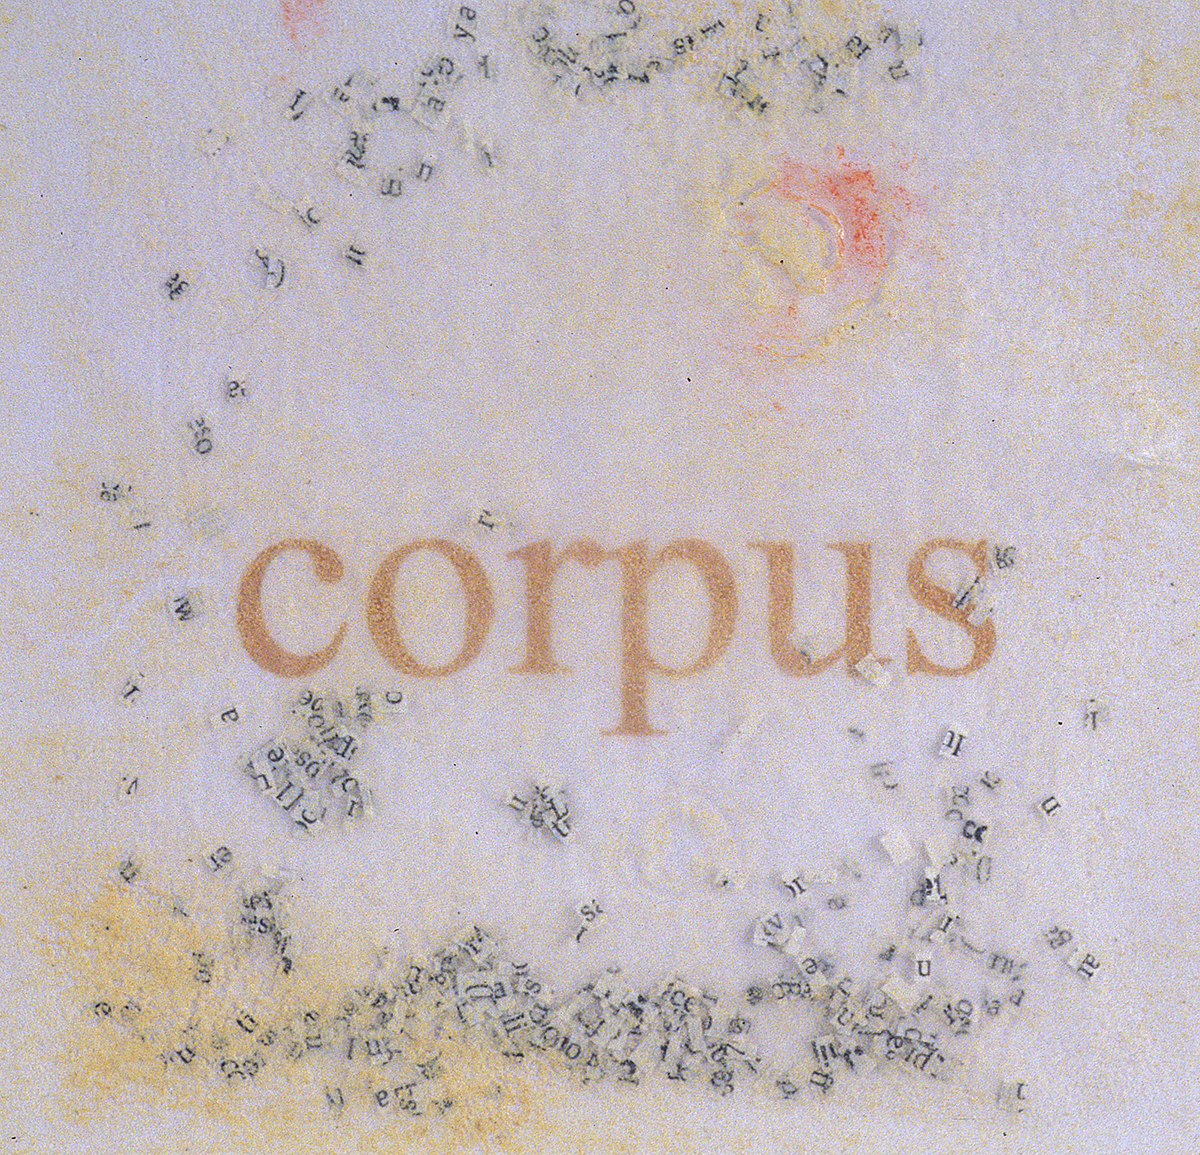 Corpus of the Unknowable - Cut up dictionary text and collagraph printing, each piece 7.5